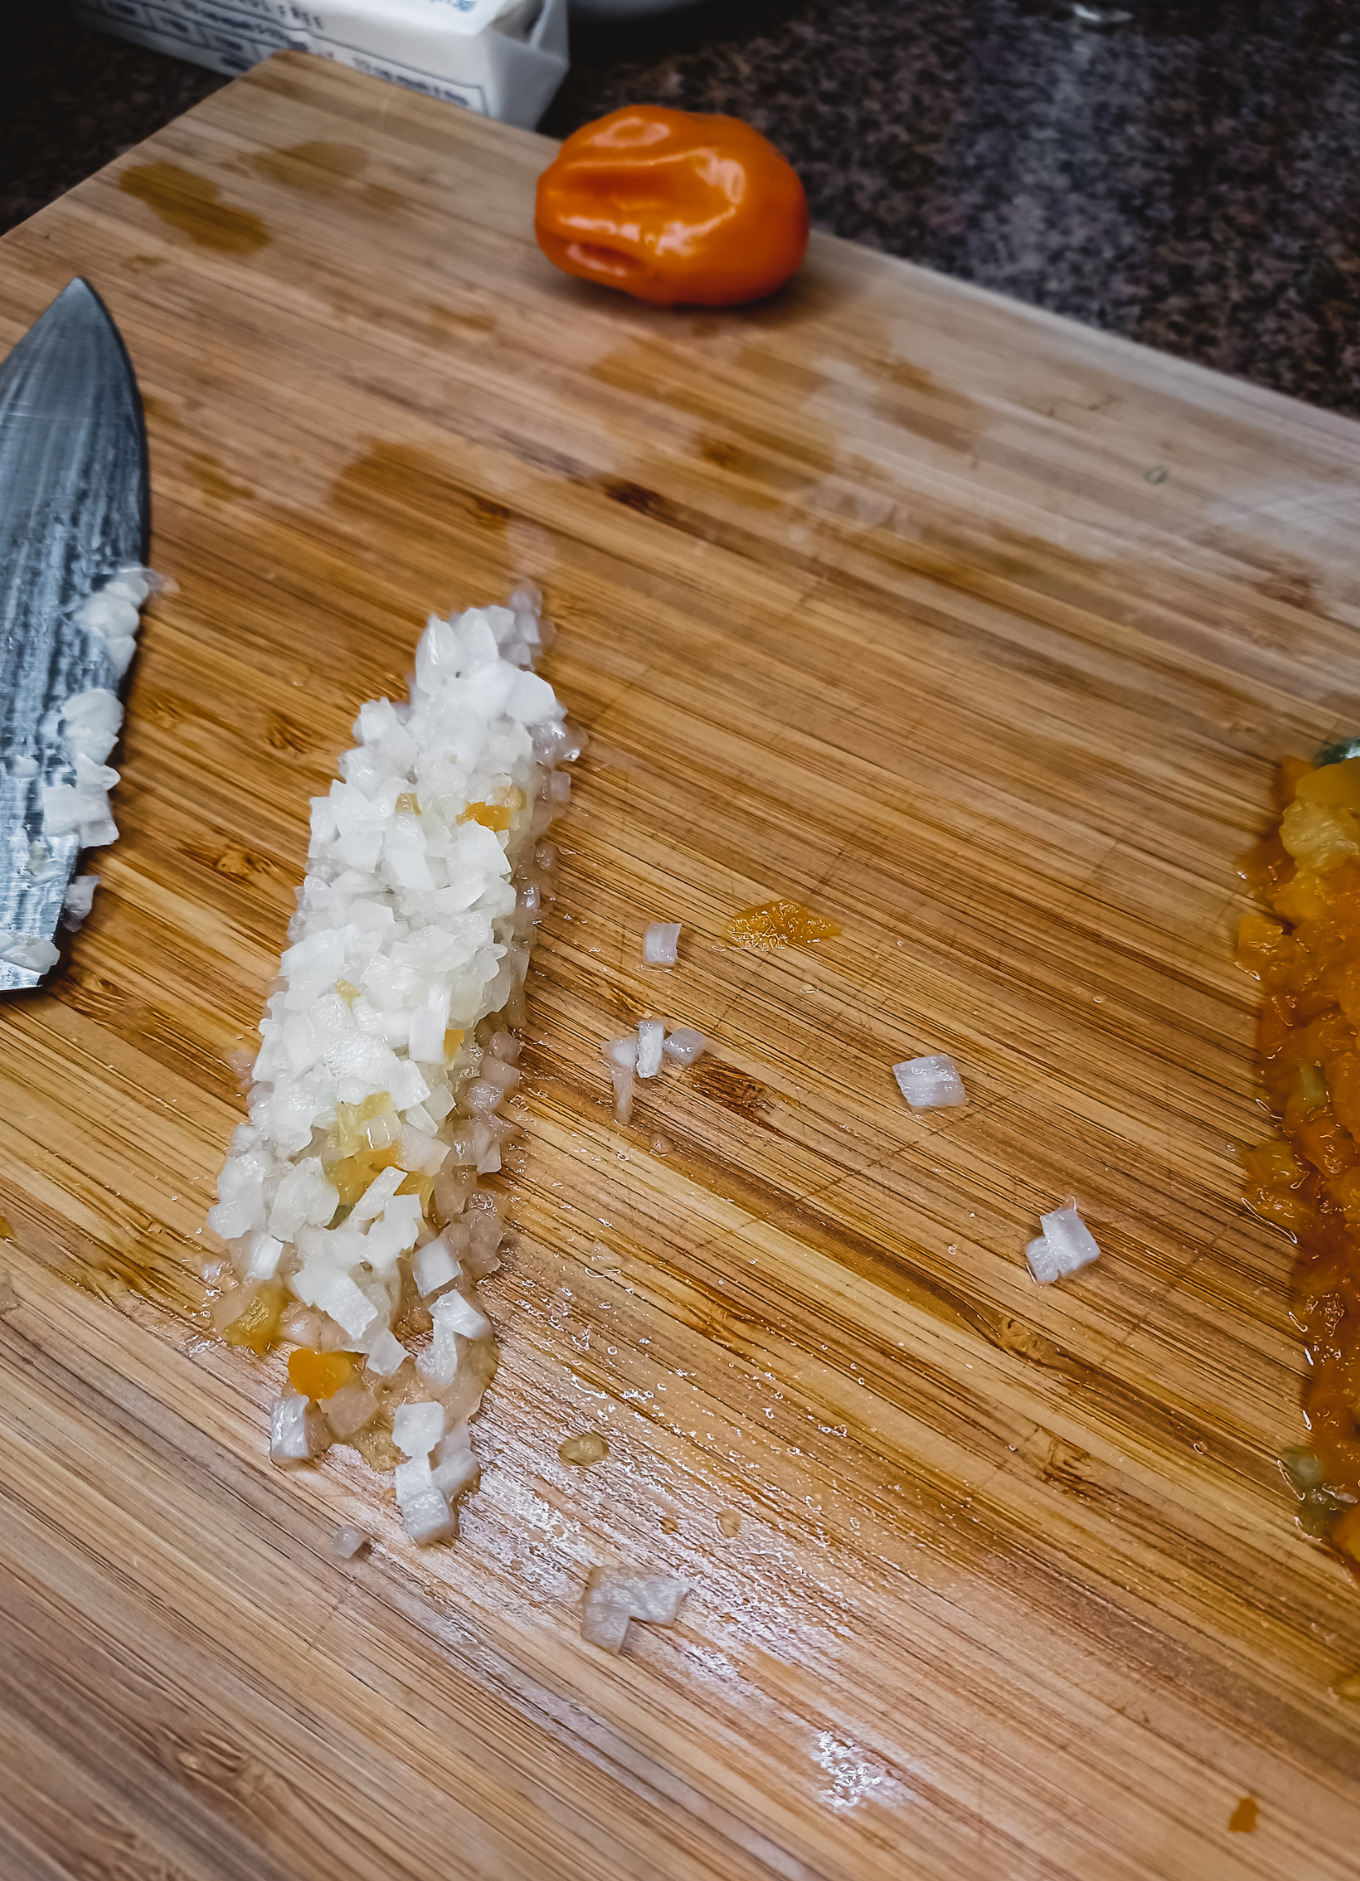 A cutting board with a knife, habanero pepper and onion.